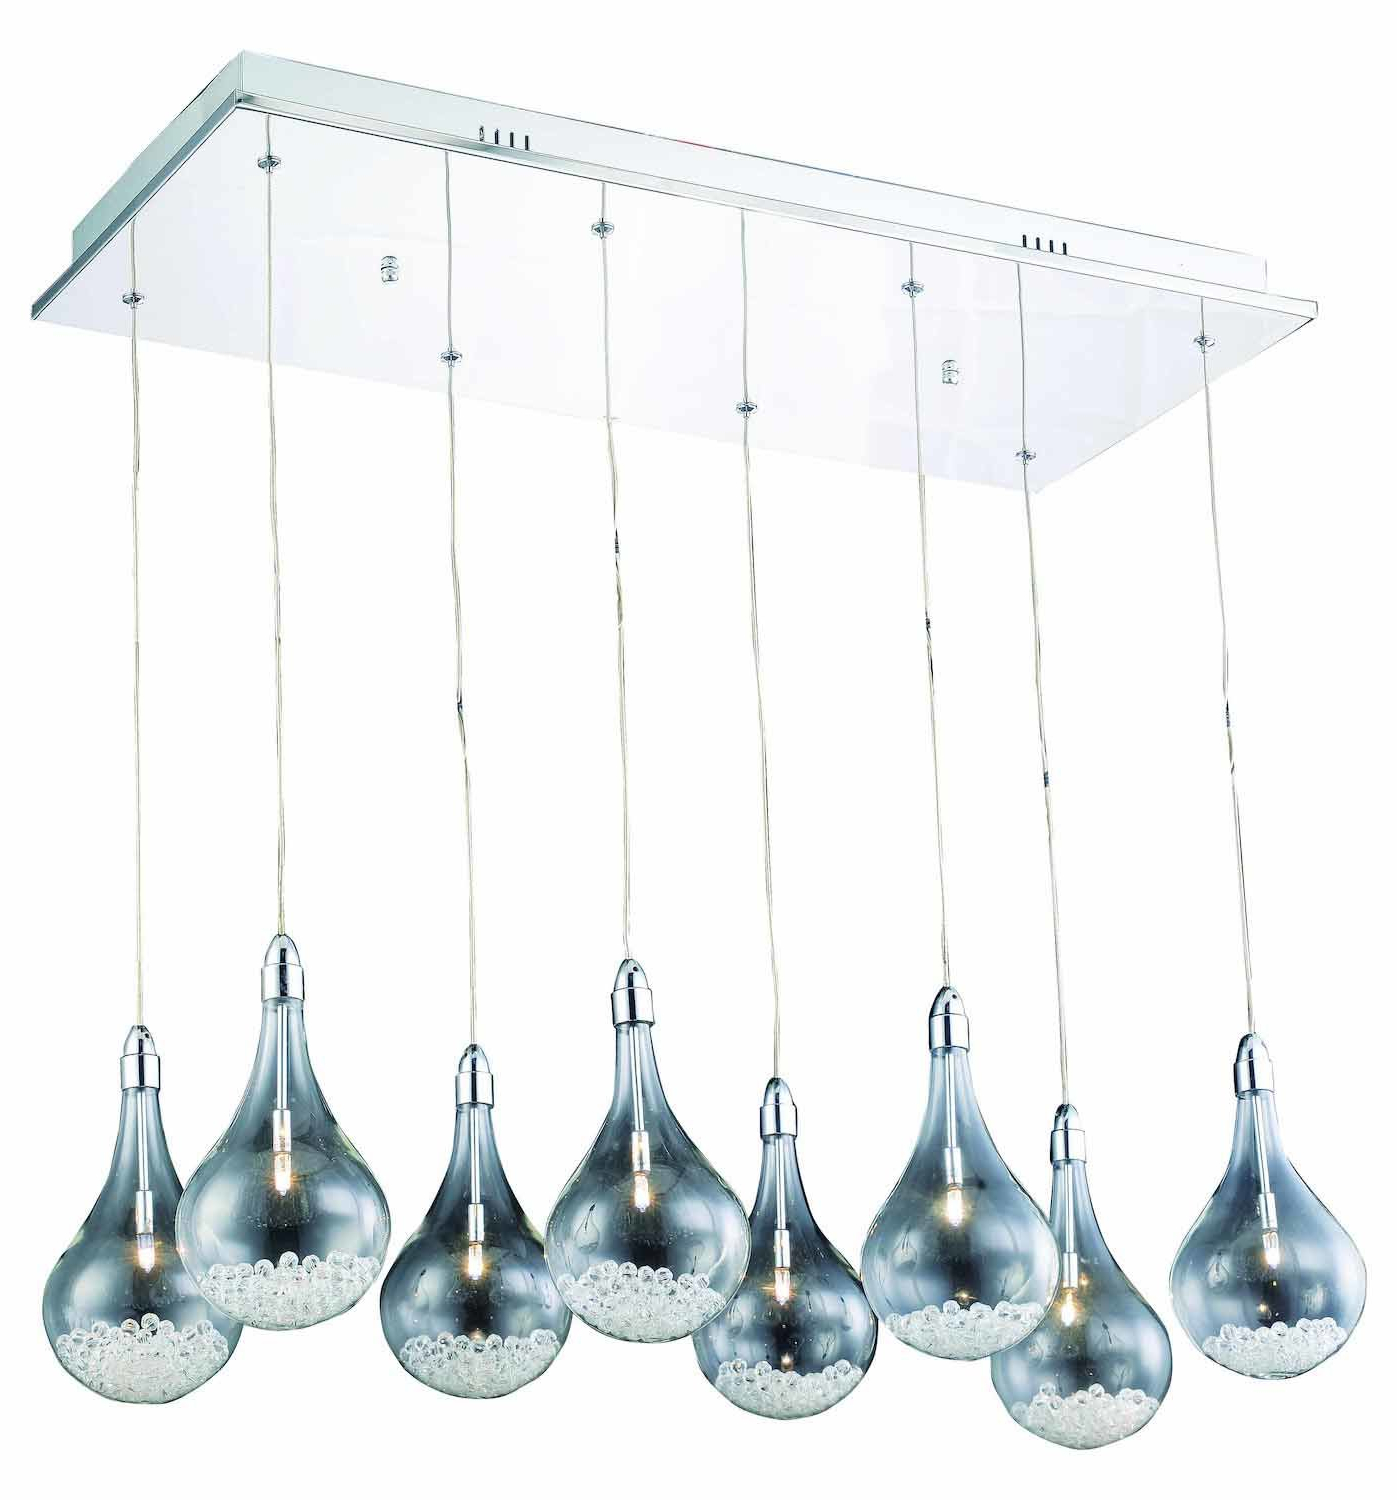 Well Known Neal 9 Light Kitchen Island Teardrop Pendants Regarding Ernie 8 Light Kitchen Island Teardrop Pendant (View 23 of 25)